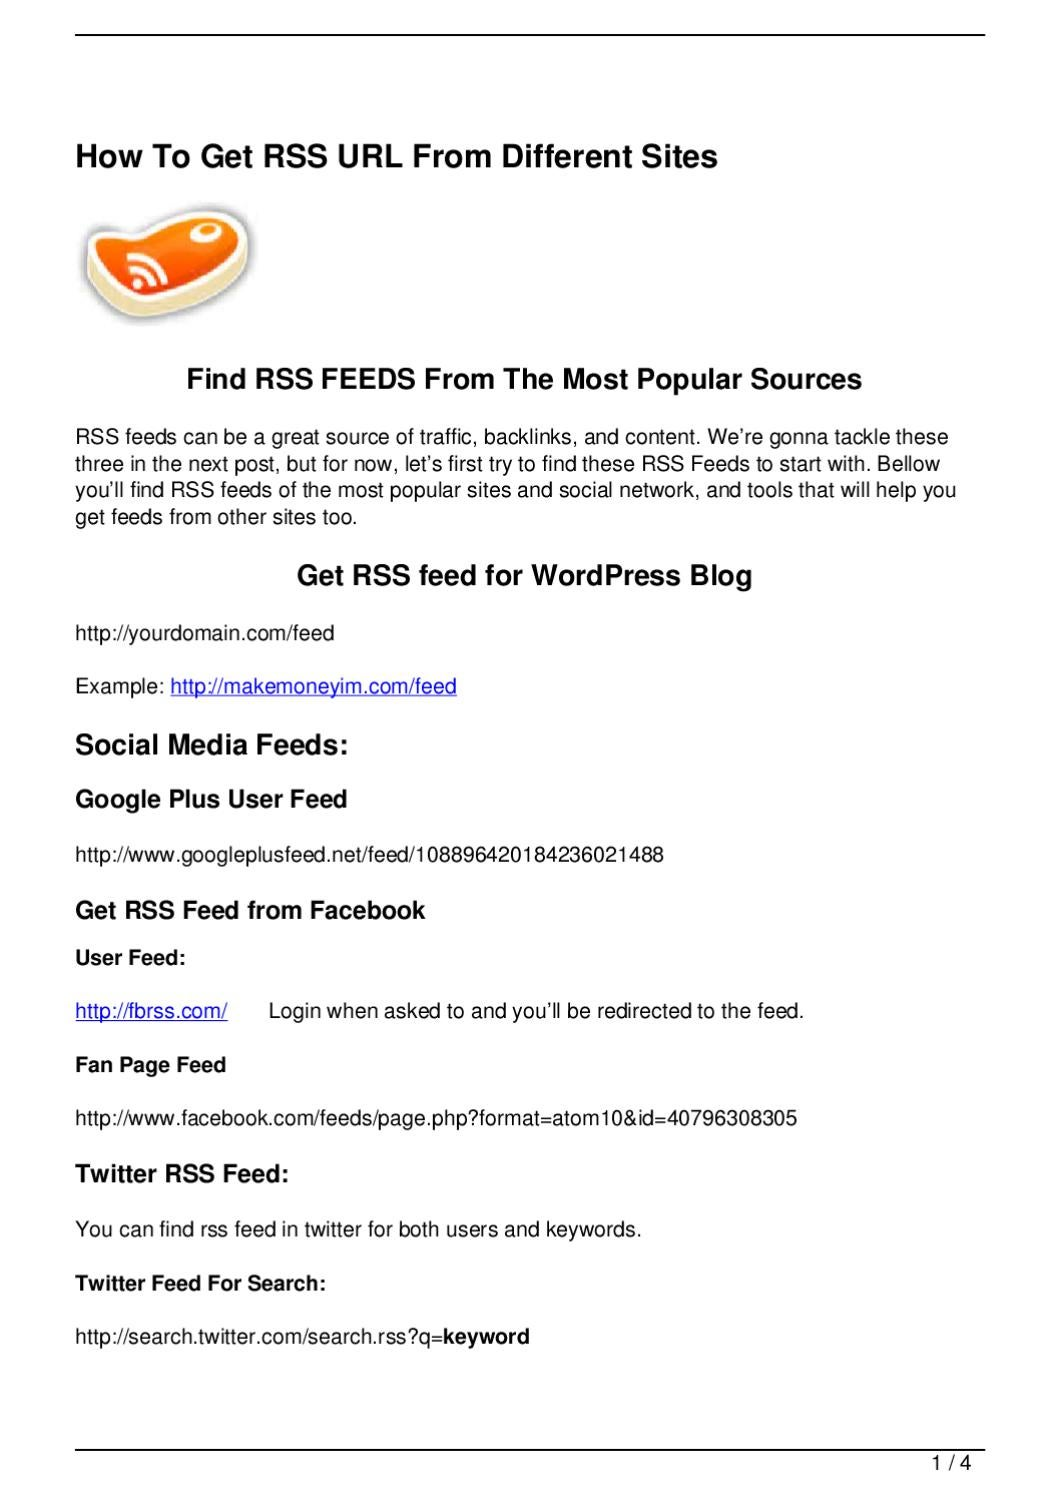 How To Get RSS URL From Different Sites by Noam Tobi - issuu